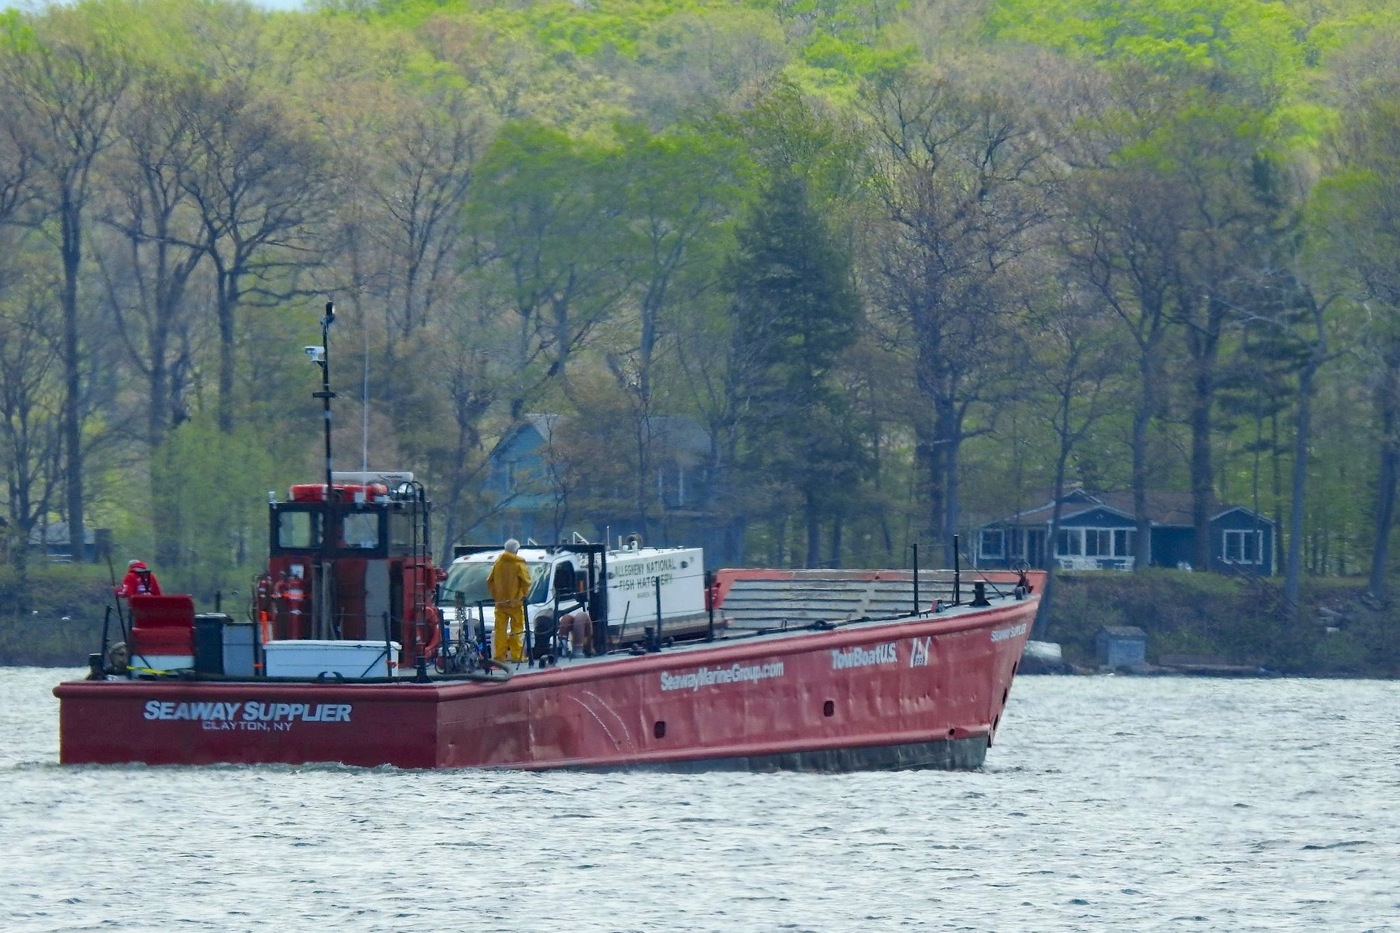 NYS DEC - LAKE ONTARIOFISH STOCKING VIA USCG CERTIFIED LCM-8